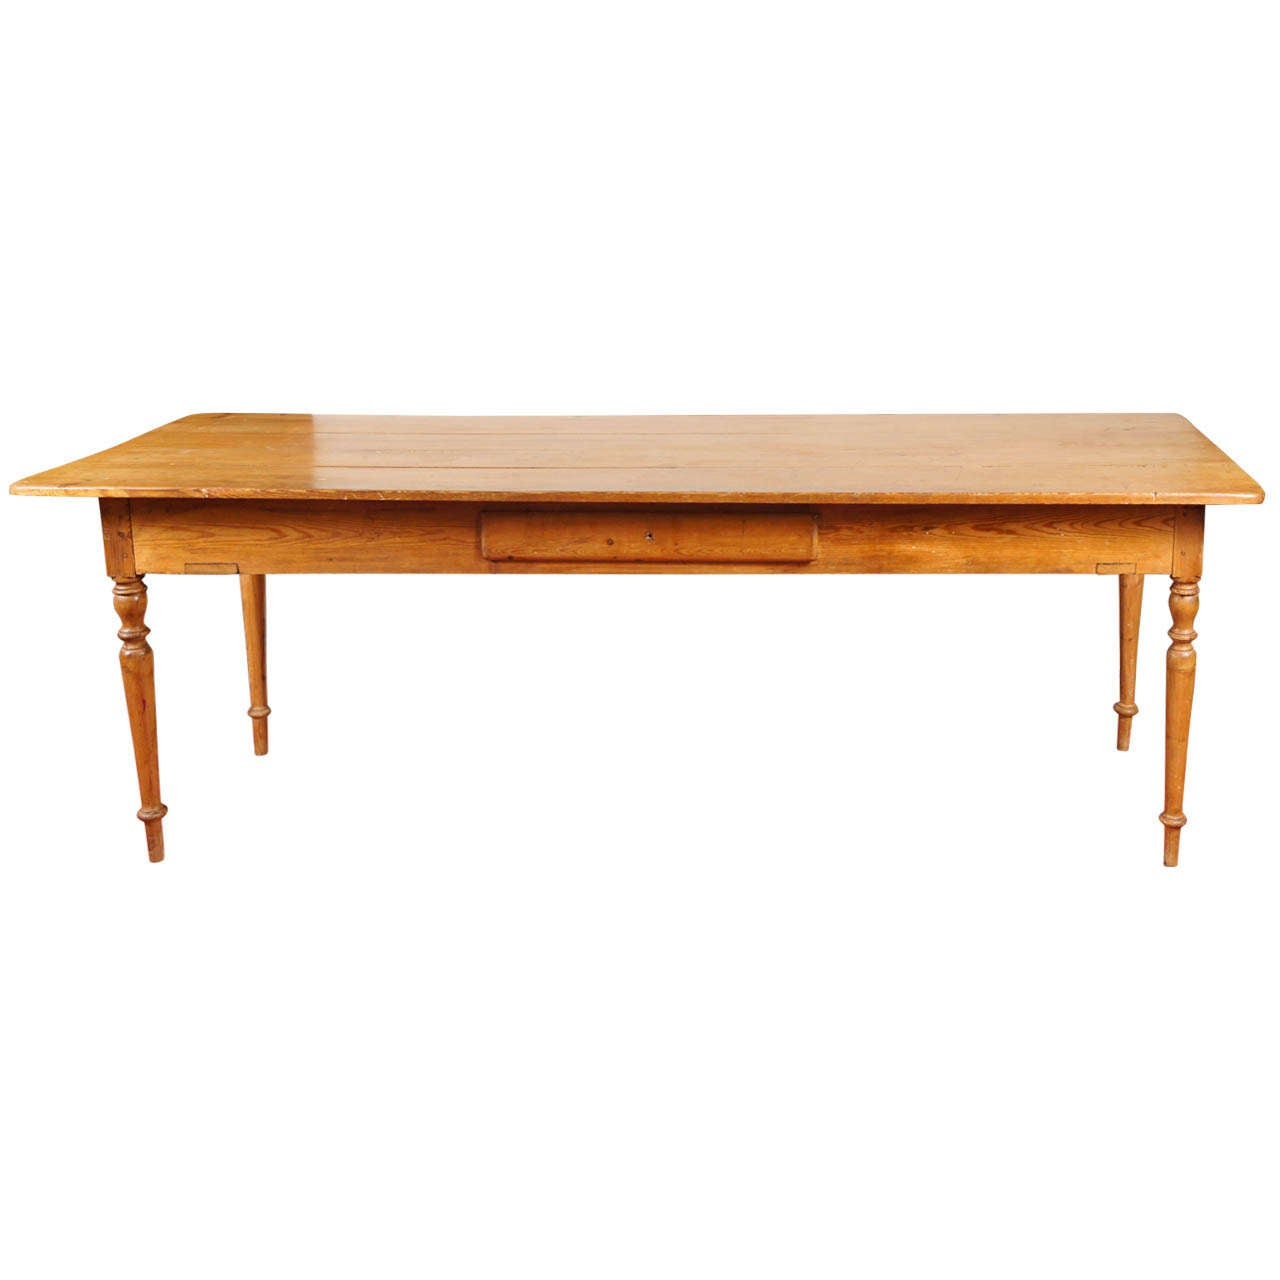 19h Century English Pine Country Table